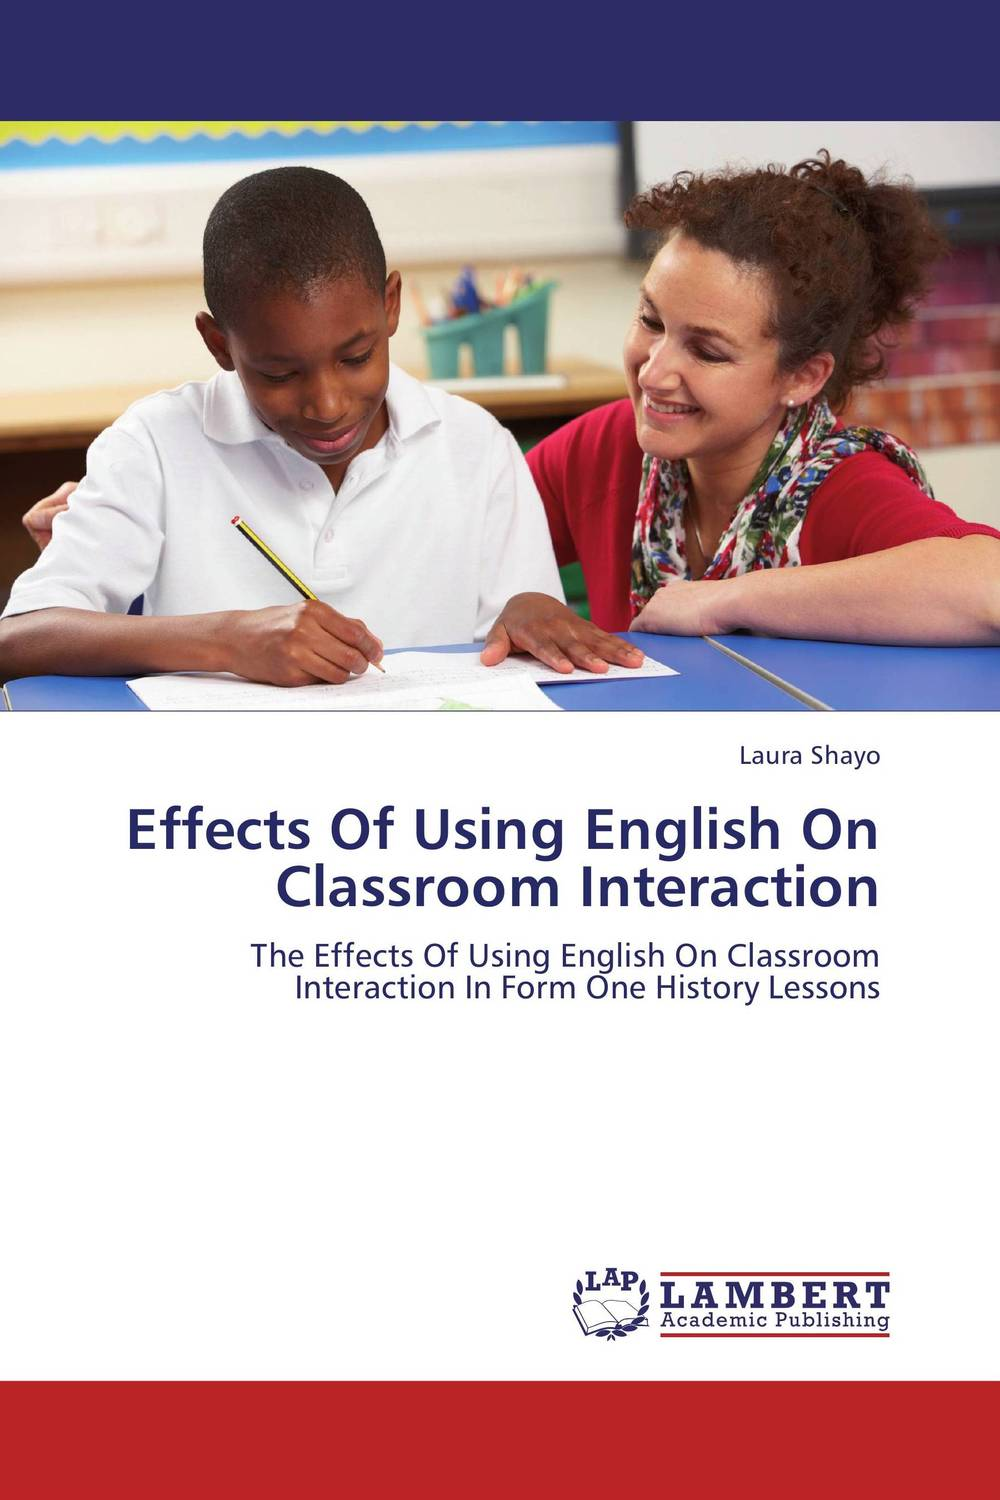 Effects Of Using English On Classroom Interaction a few lessons from american history reader for students of english